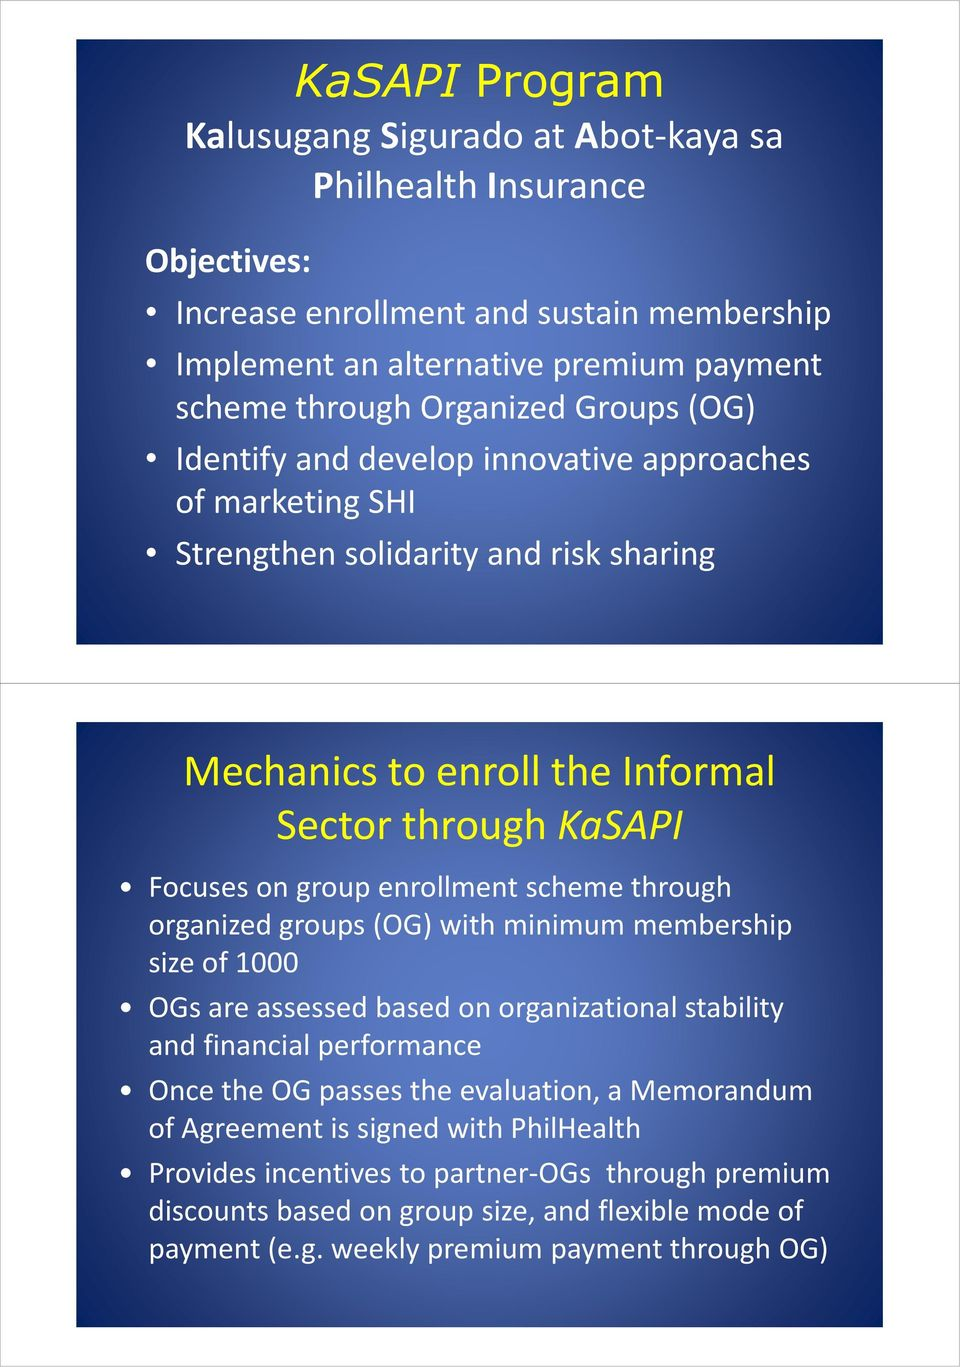 scheme through organized groups (OG) with minimum membership size of 1000 OGs are assessed based on organizational stability and financial performance Once the OG passes the evaluation, a